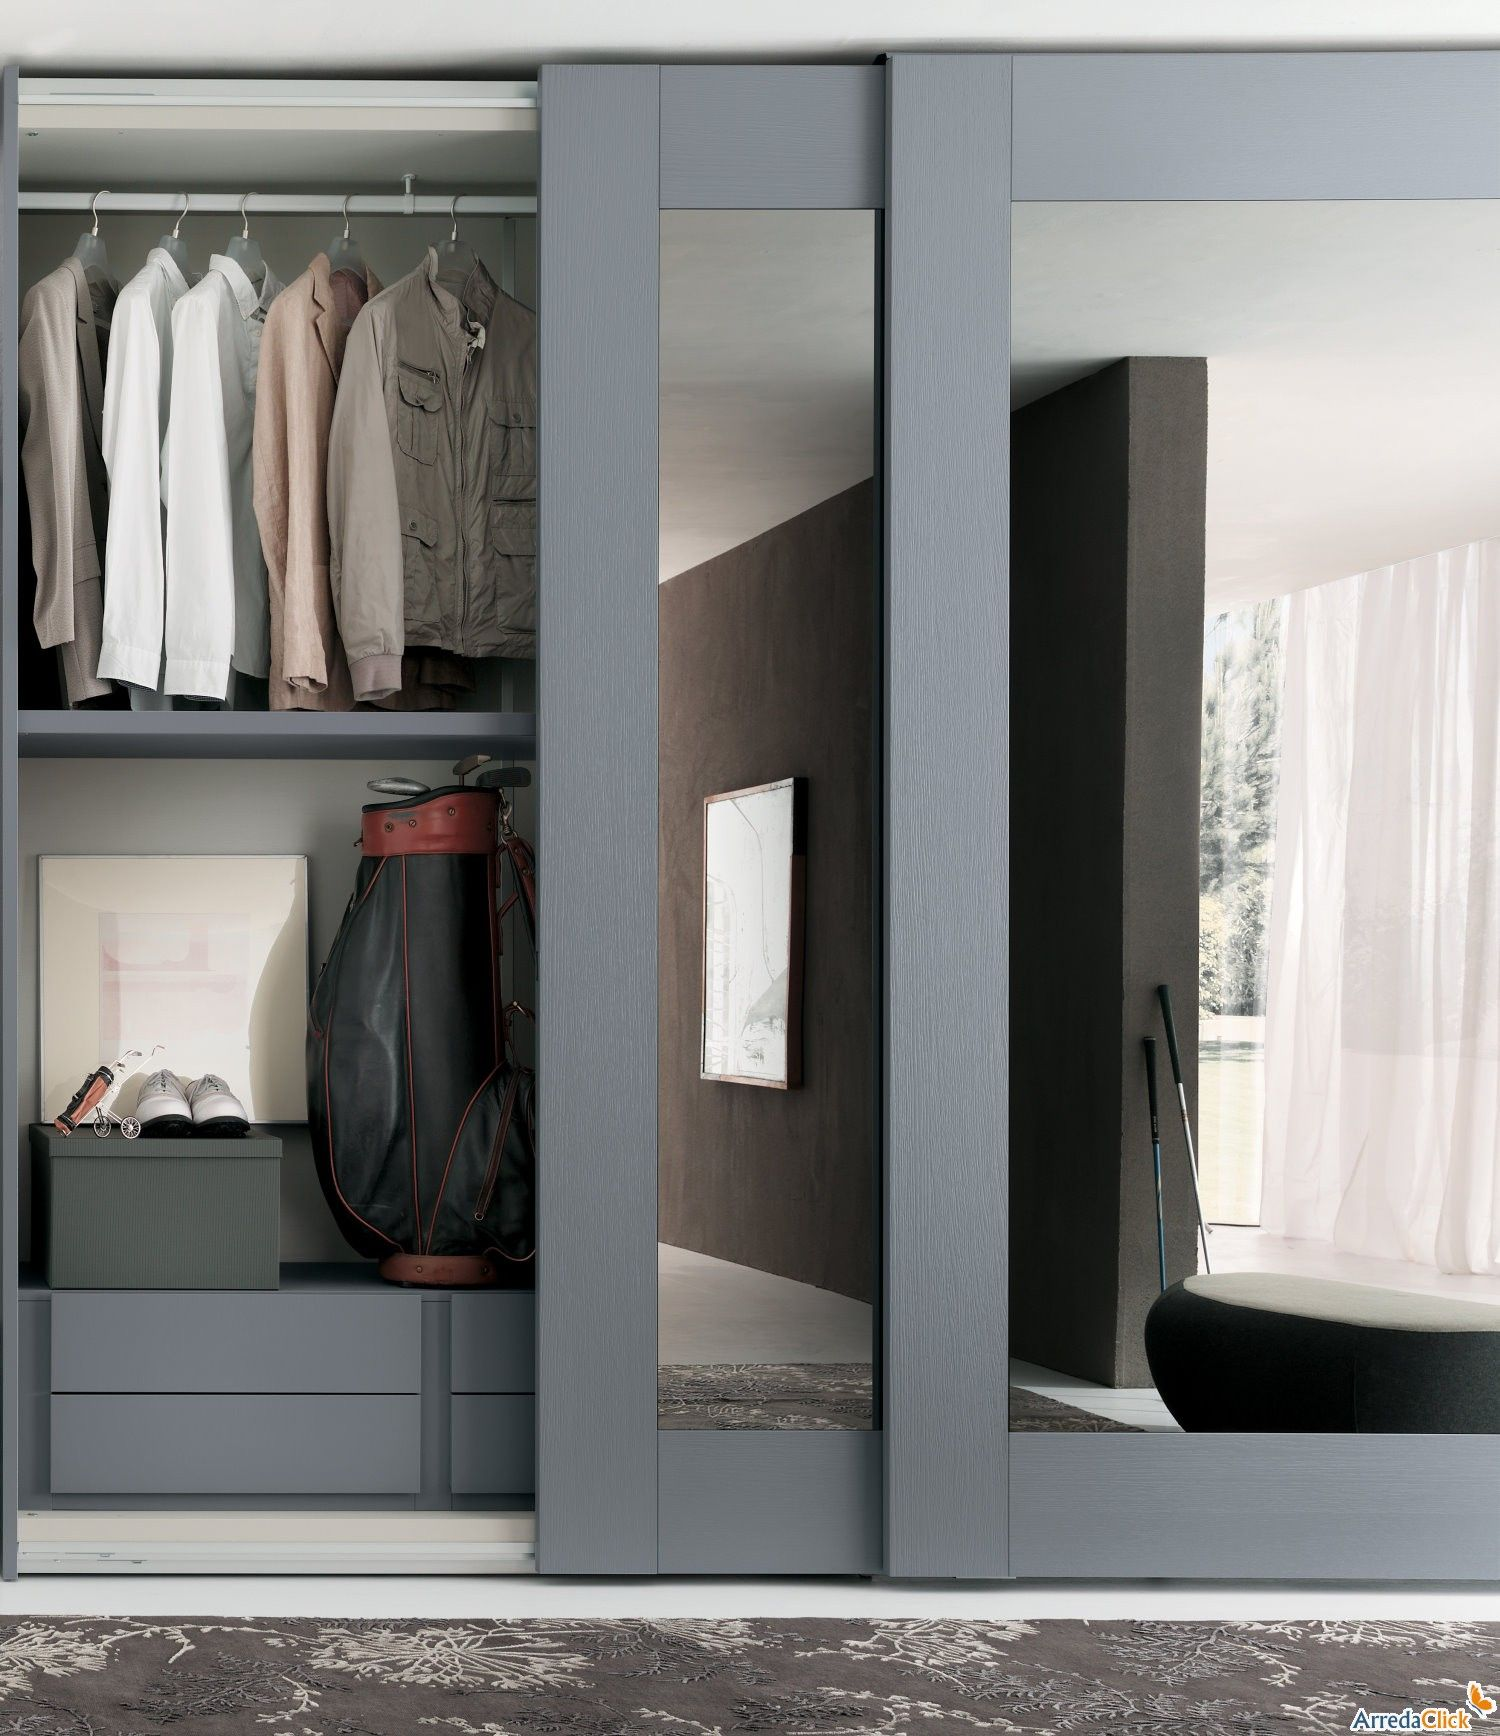 xf home fascinating ikea sliding amazing closet of uk ceiling to design doors floor and ideas pics trends decor wardrobe